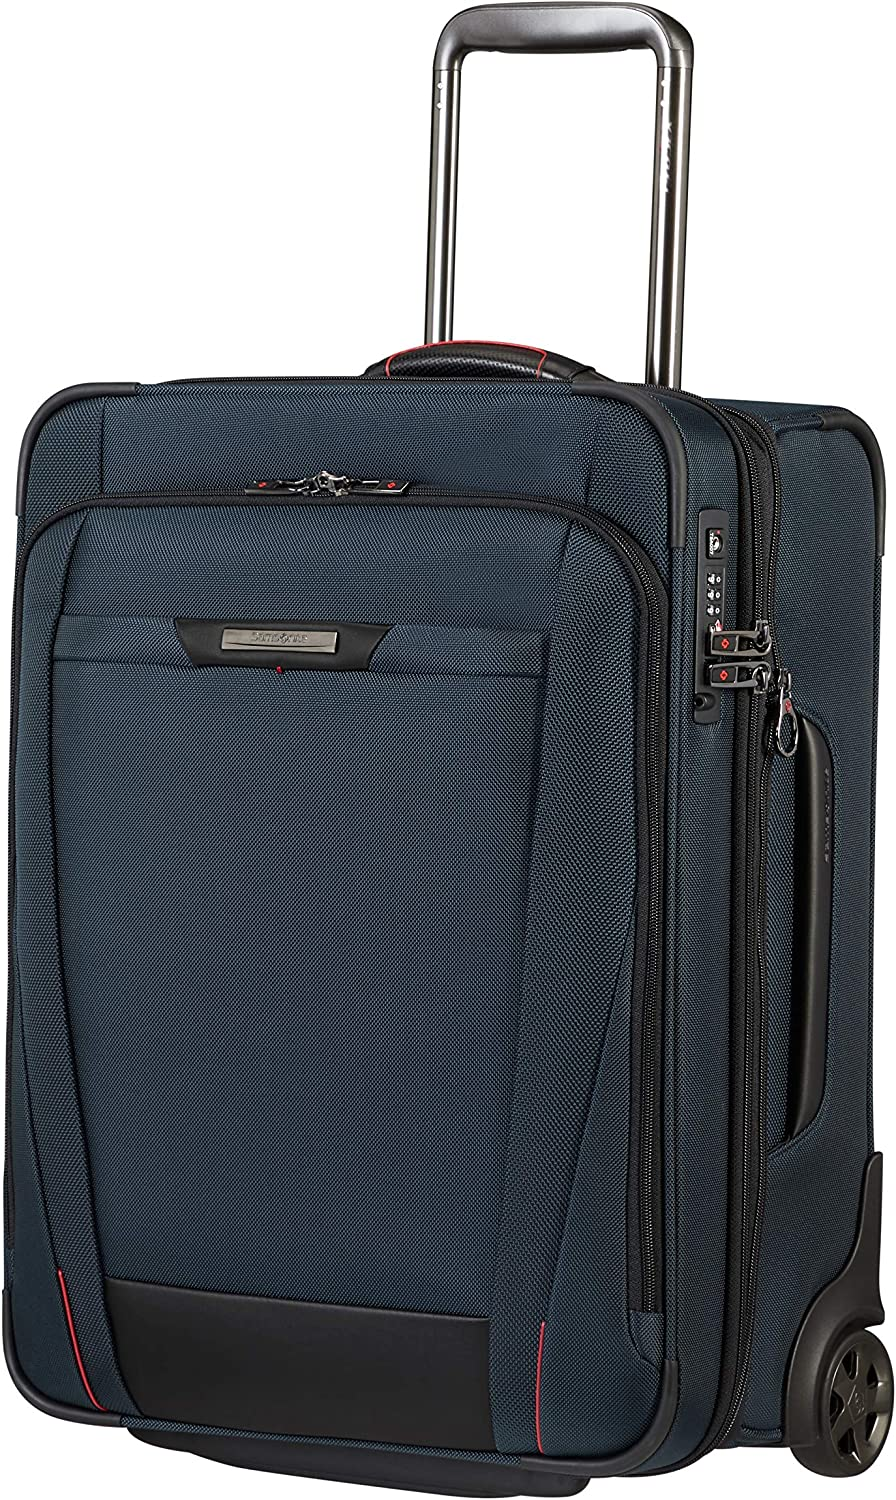 Samsonite Pro-DLX 5 - Upright S Expandible Equipaje de Mano, 55 cm, 44.5/54 L, Azul (Oxford Blue)